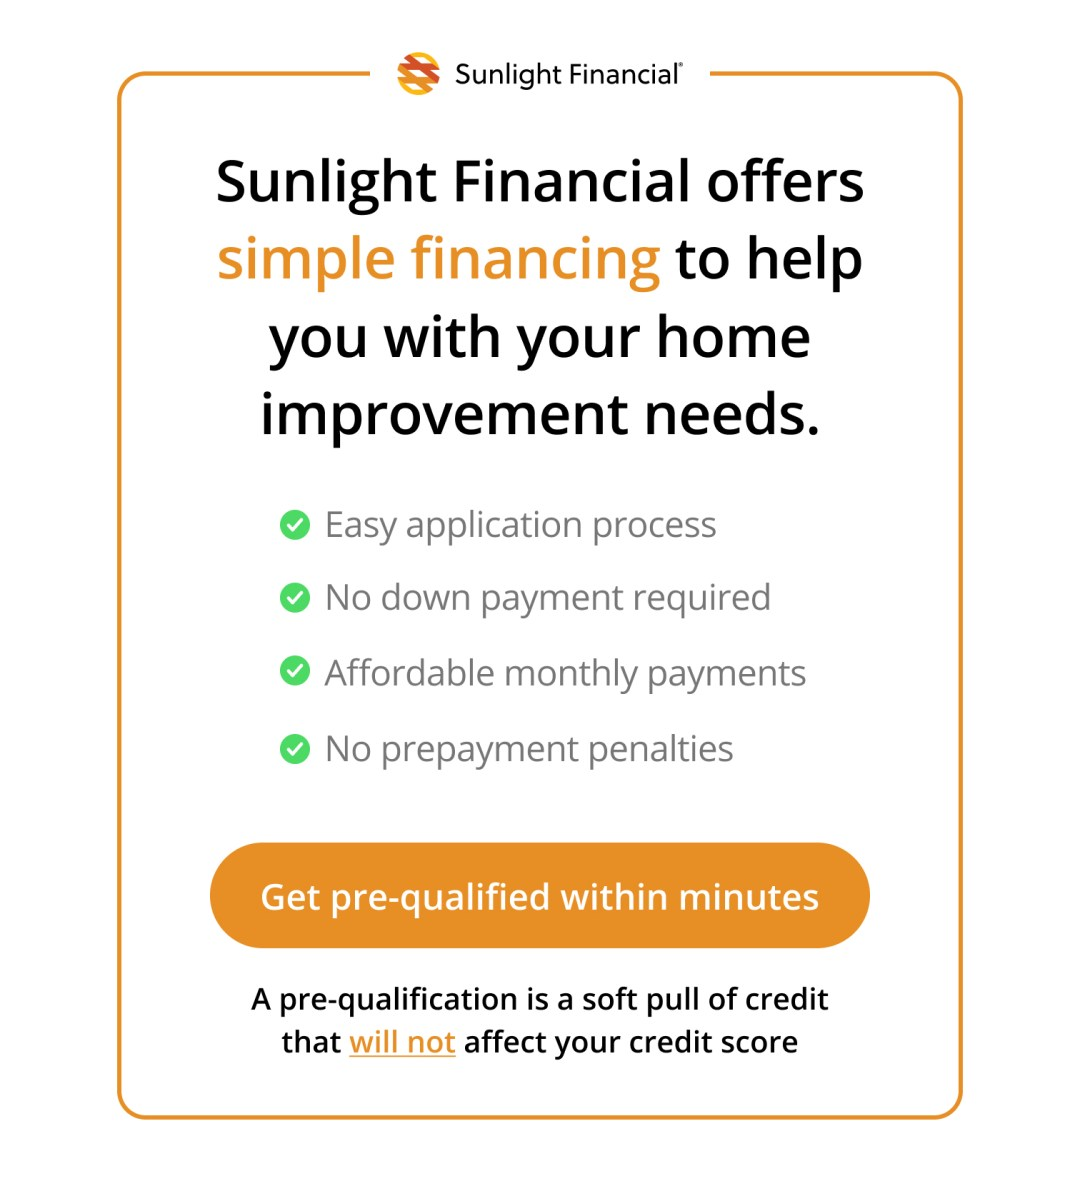 Get Pre-qualified for a Sunlight Financial loan